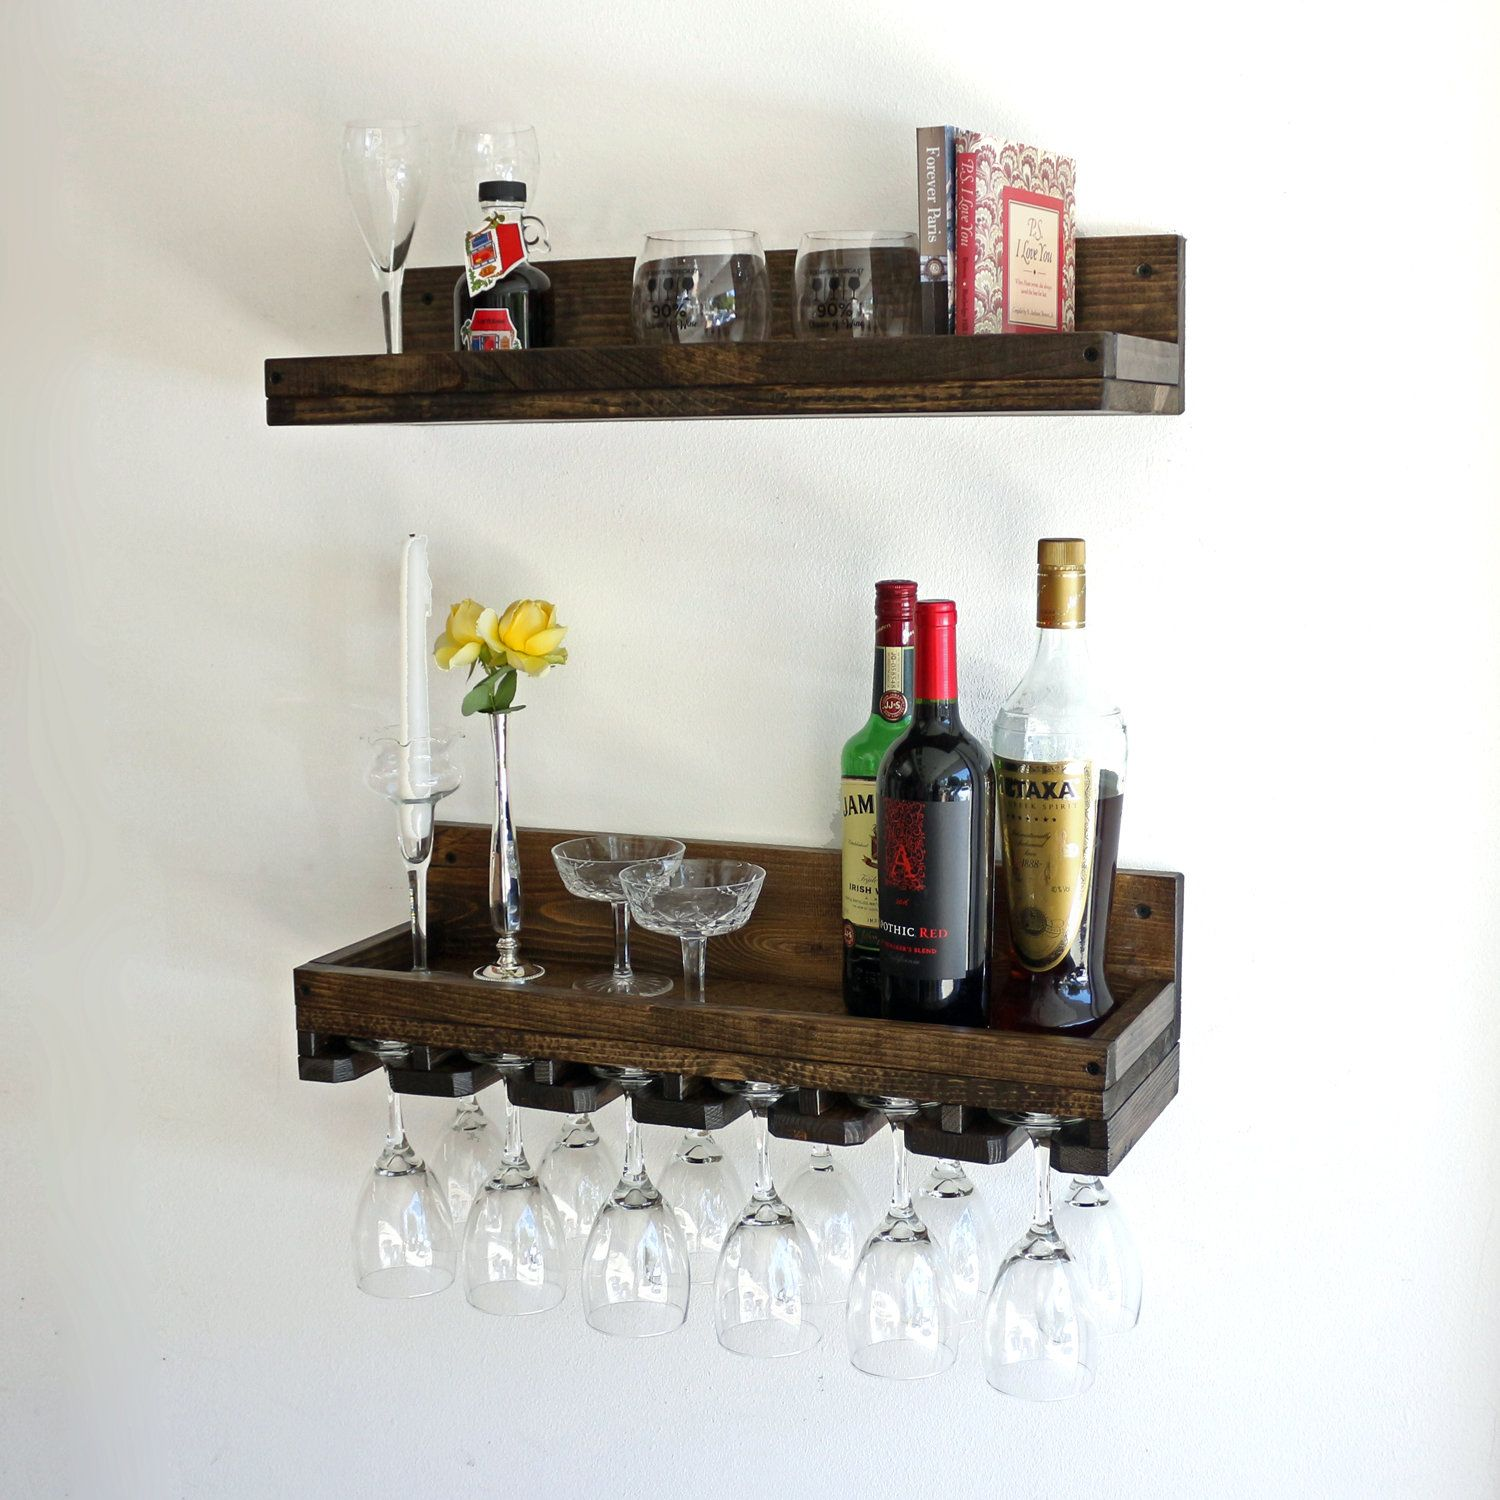 Rustic Wood Wine Rack Wall Mounted Shelf And Beveled Hanging Stemware Glass Holder Bar Shelf Organizer Modern Wall Wine Rack Wine Rack Wall Wood Wine Racks